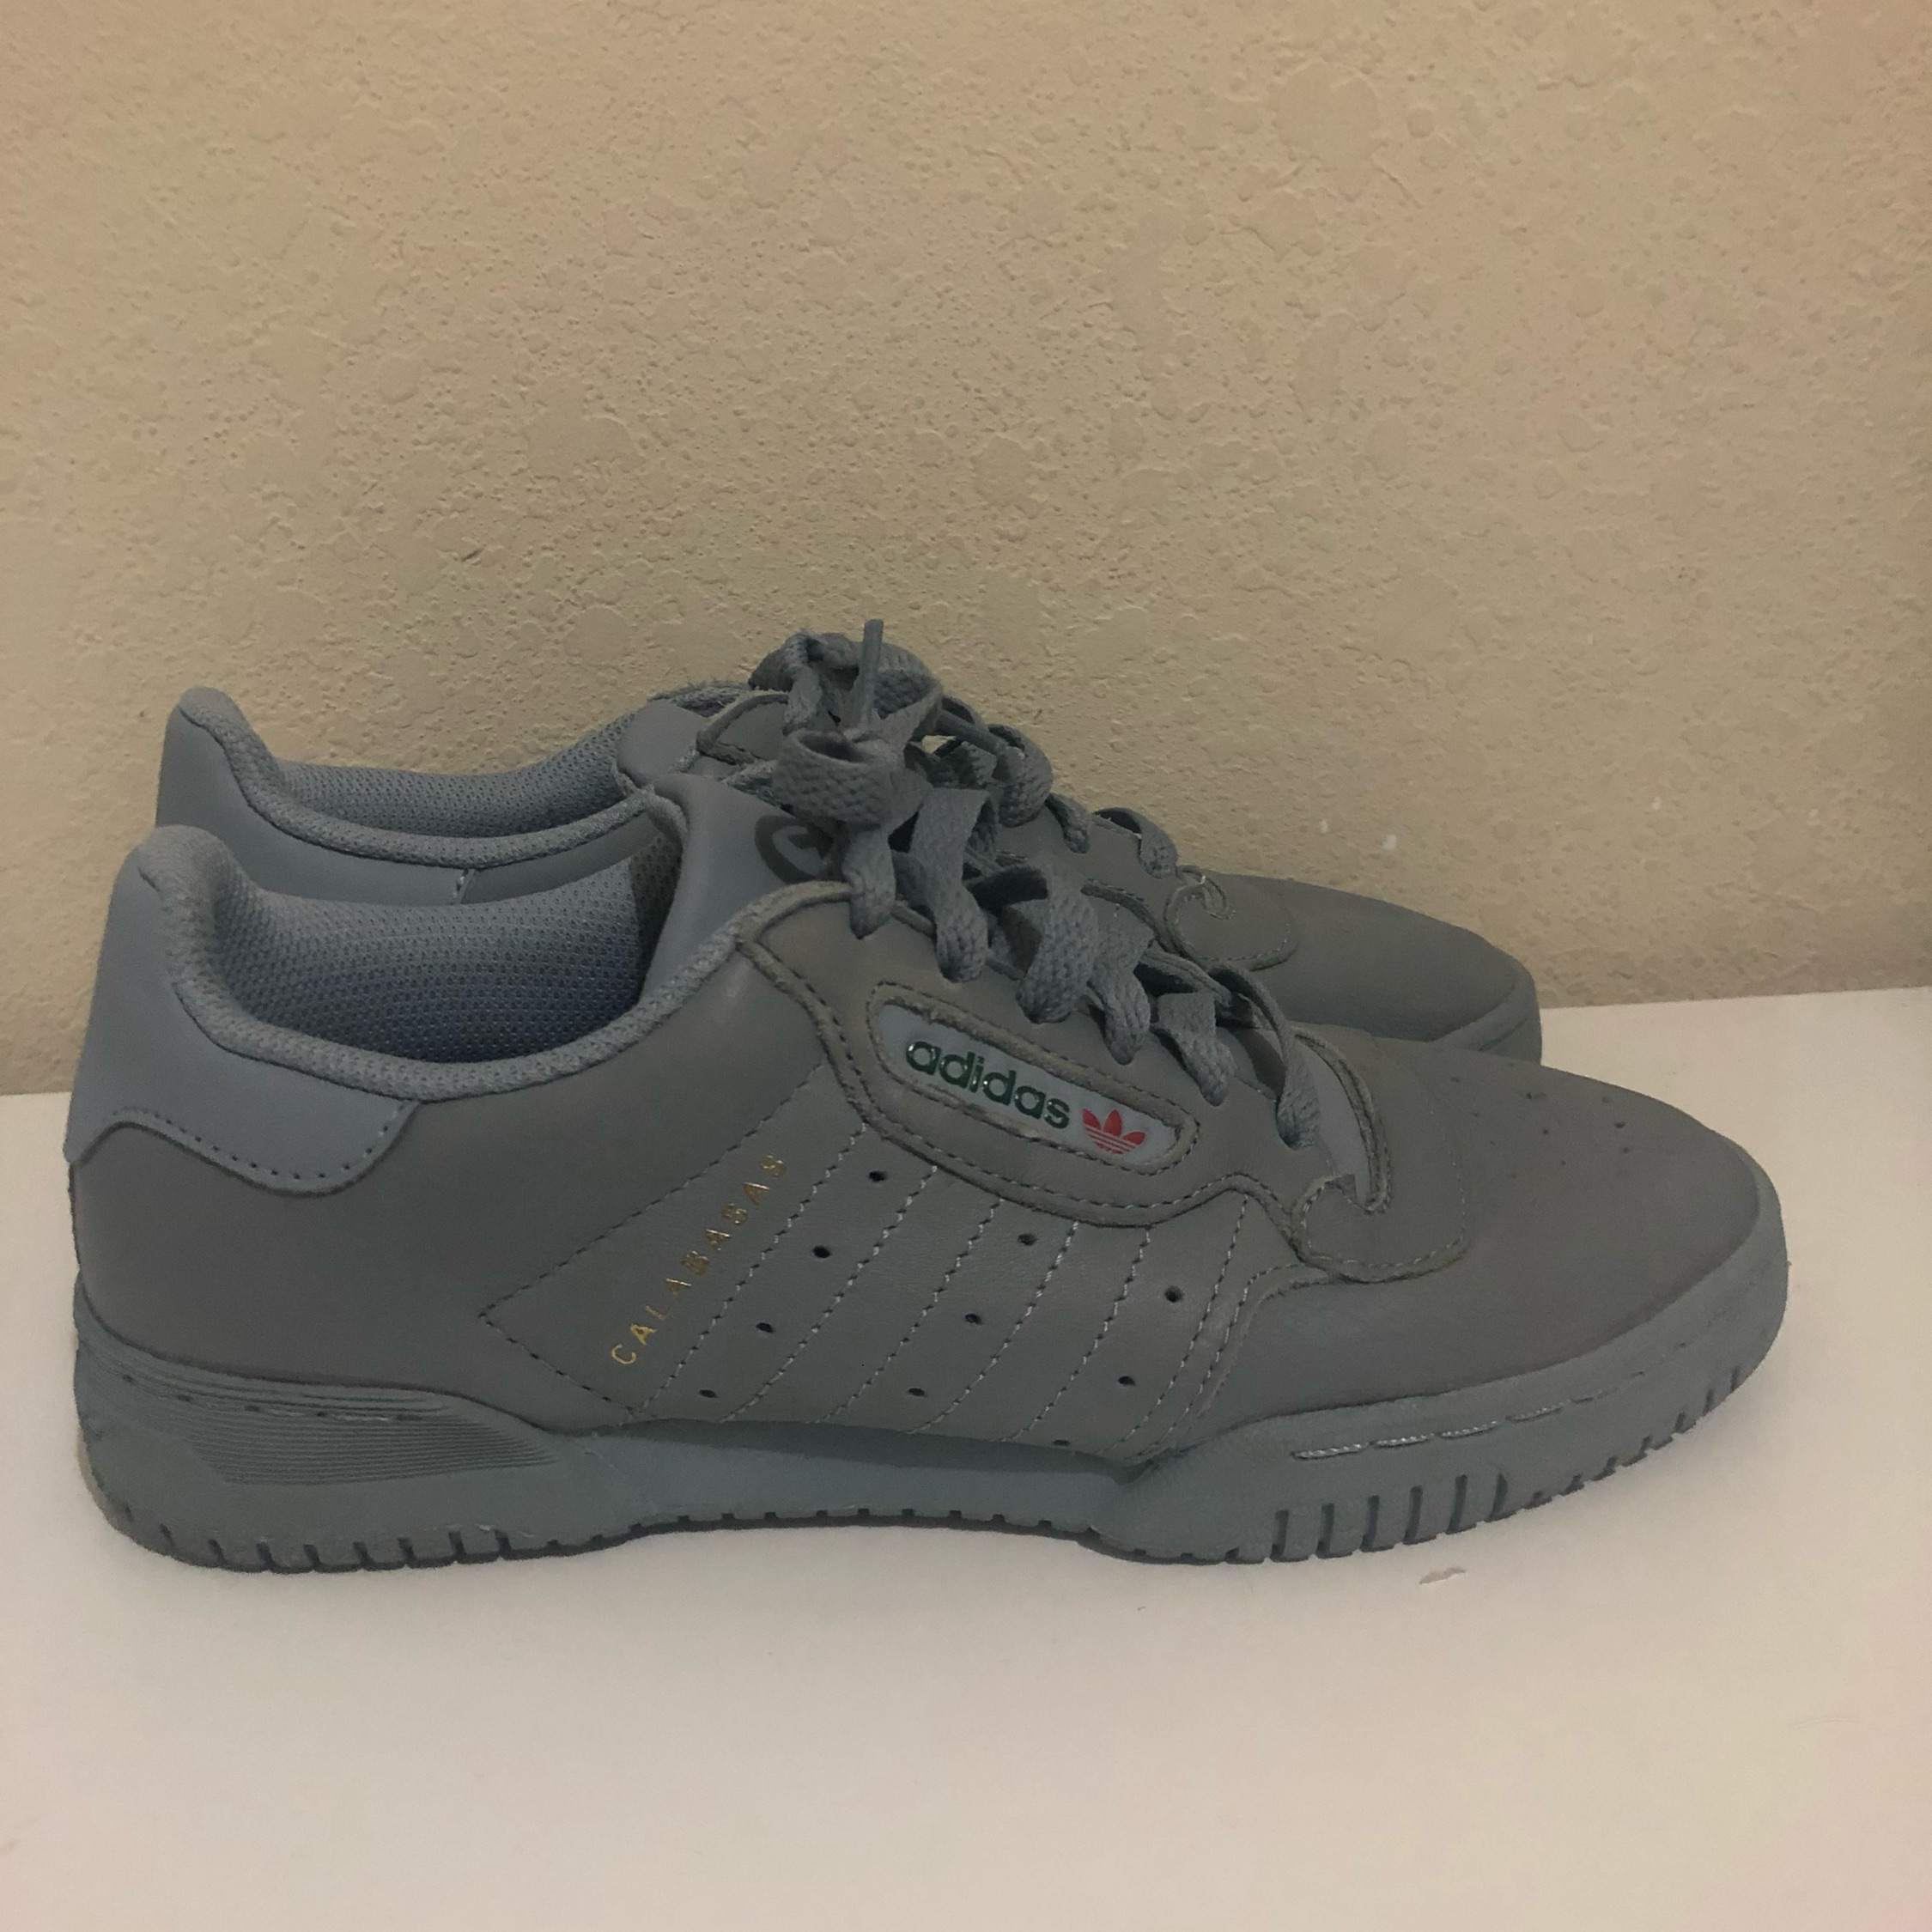 yeezy powerphase adidas